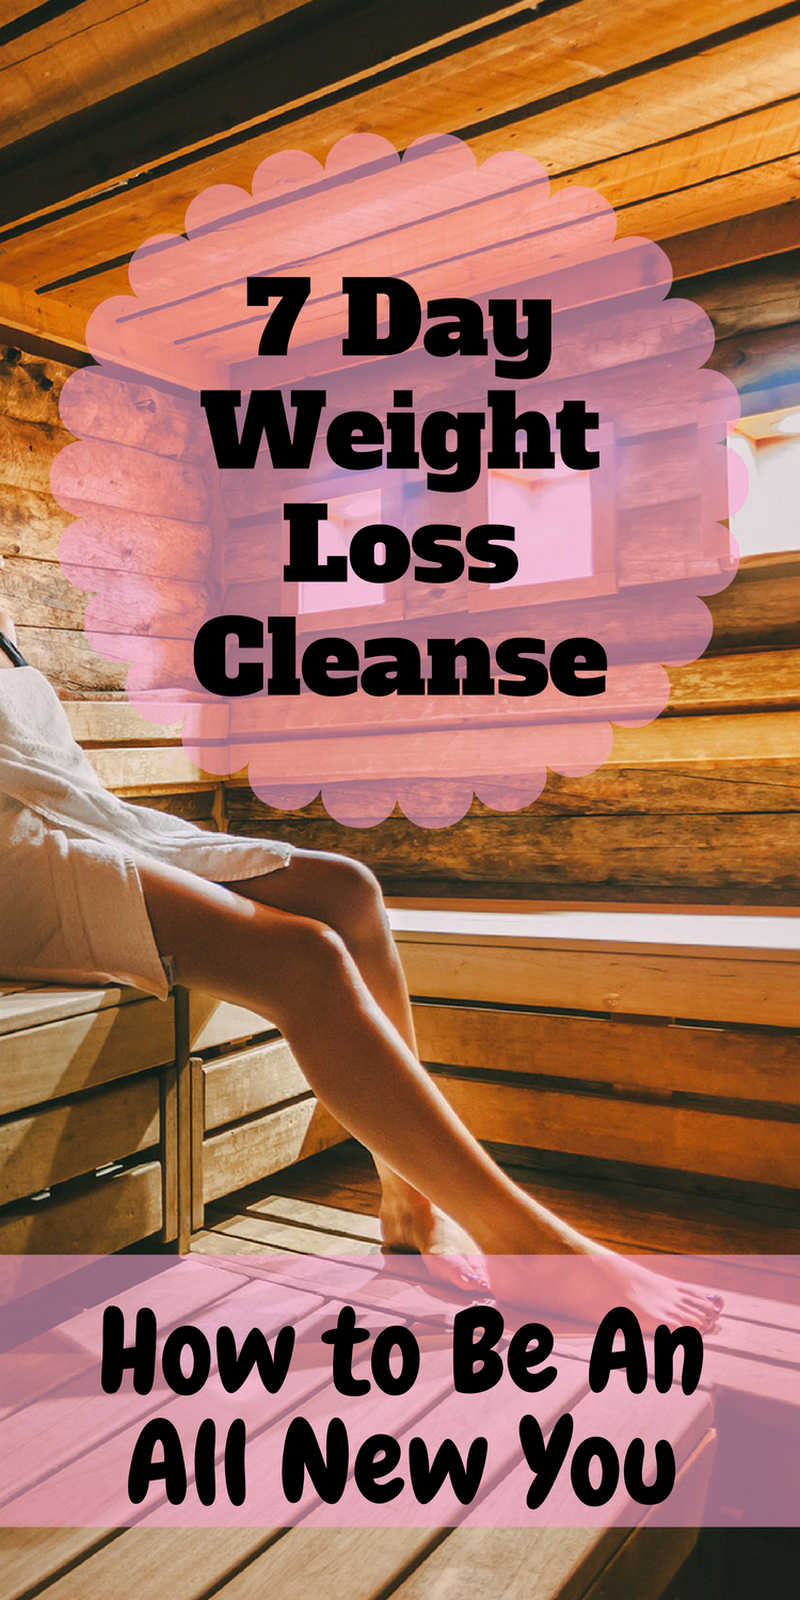 7 Days Weight Loss Cleanse | How To Be An All NEW YOU | Detox | Detox Cleanse | Detox Water | Detox Drinks | Detox Bath | Detox Soup | Detox Tea | Detox Shake | Detox Smoothie | Detox Cleanse Toxins | Detox Cleanse For Weight Loss Fat Flush | Detox Cleanse For Weight Loss 10 Pounds | Detox Cleanse Flush | Detox Tea Recipe | Detox Tea Recipes Cleanse | Detox Tea Recipe Weight Loss | Detox Tea | ARoadtoTravel.com